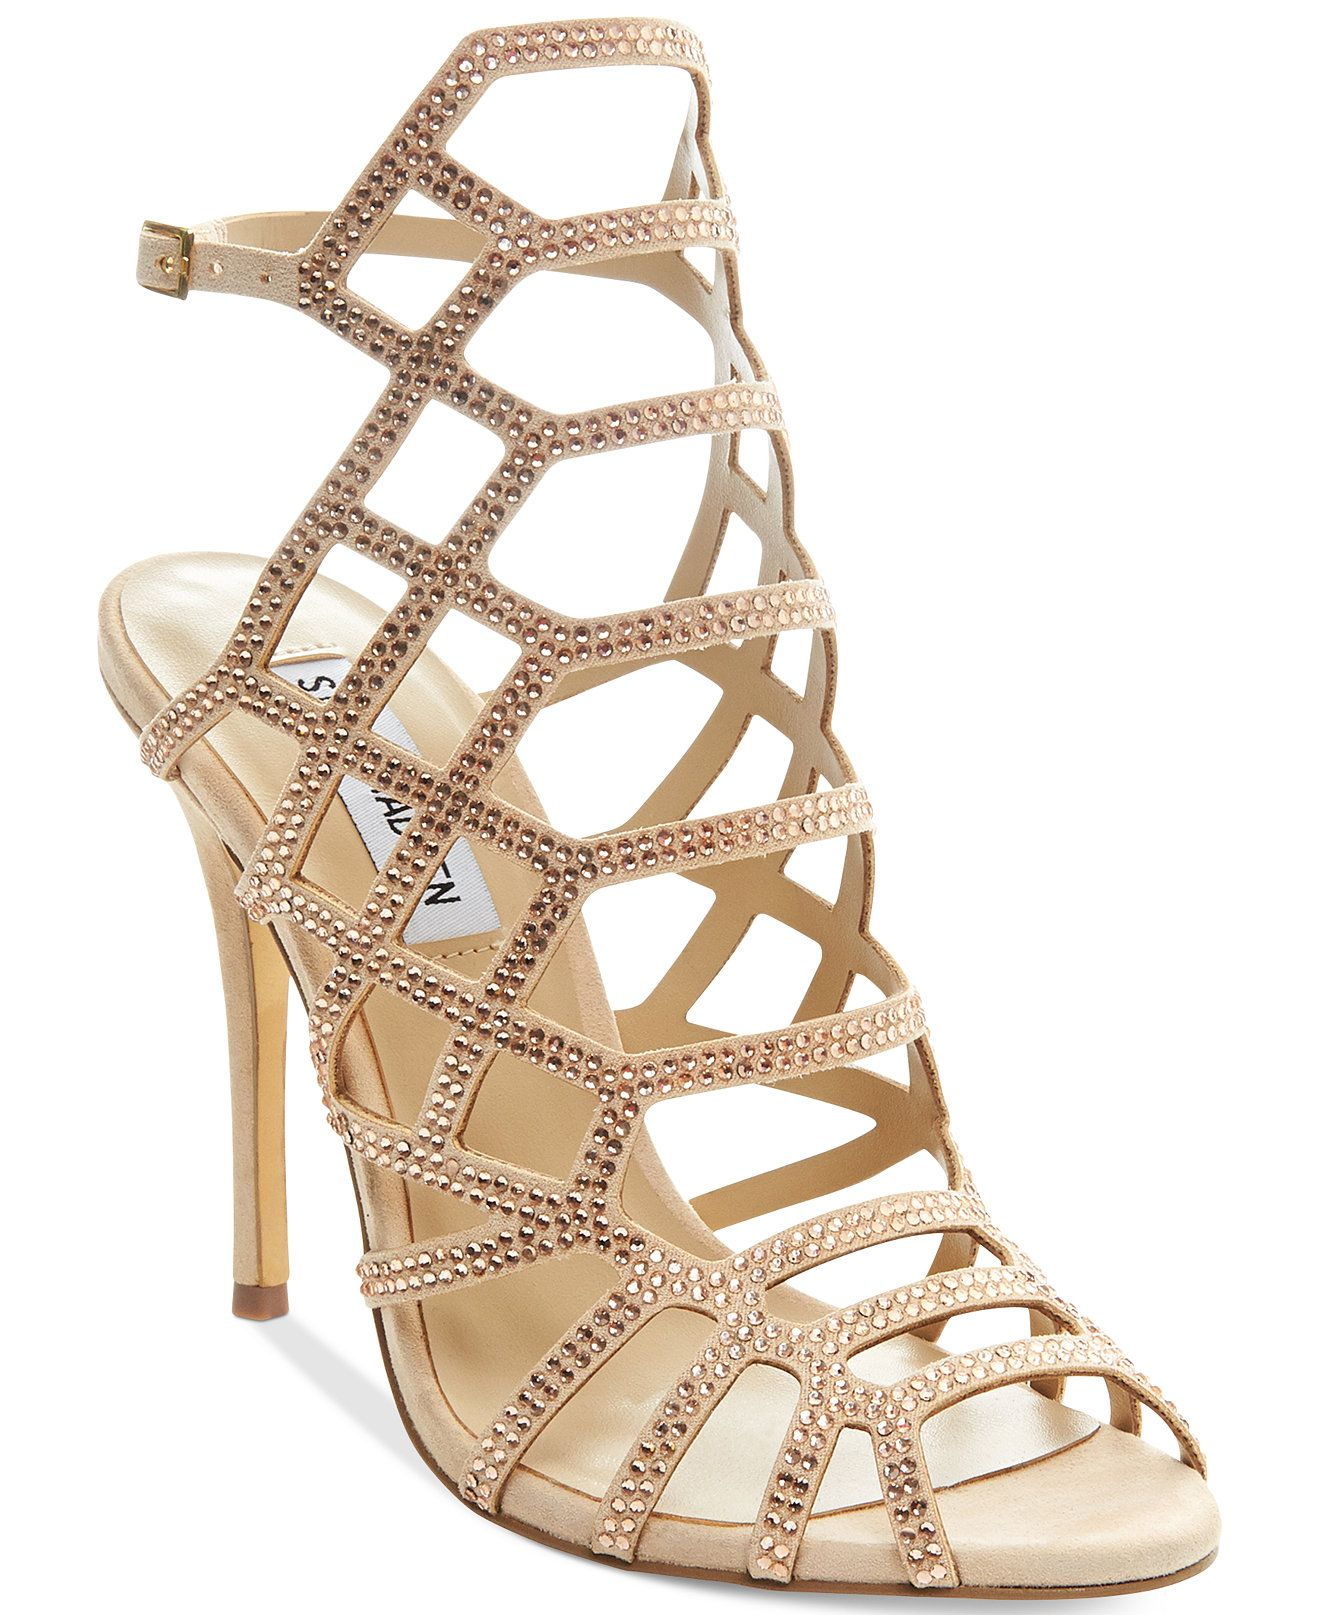 Steve Madden Slithur-r Upfront Evening Sandals - Steve Madden - Shoes -  Macy's